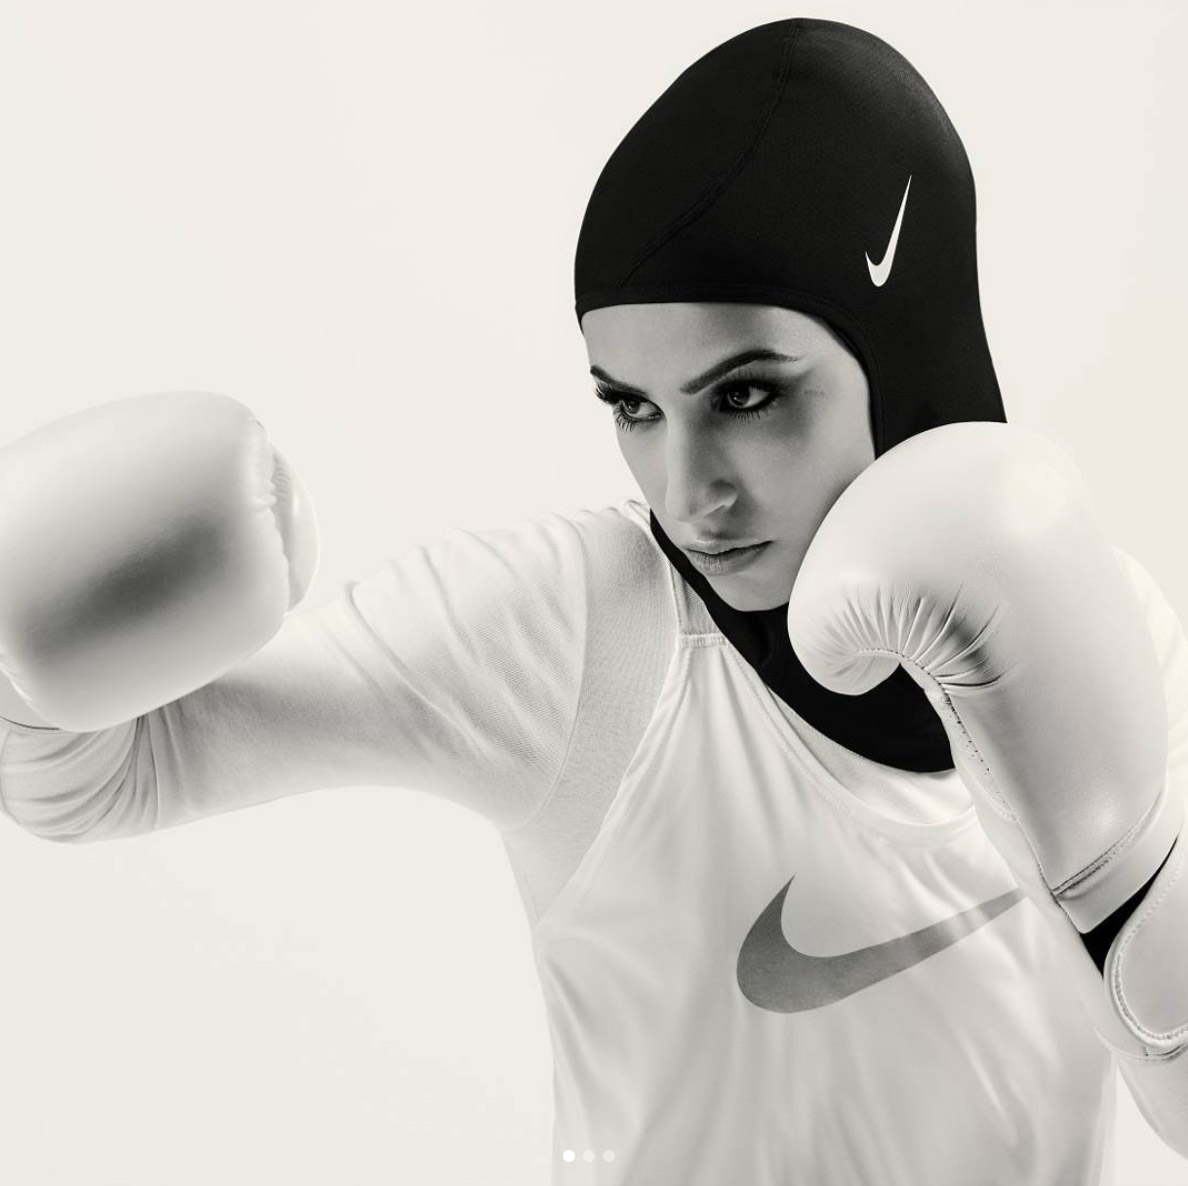 Nike was the first major international sportswear brand to launch a hijab.